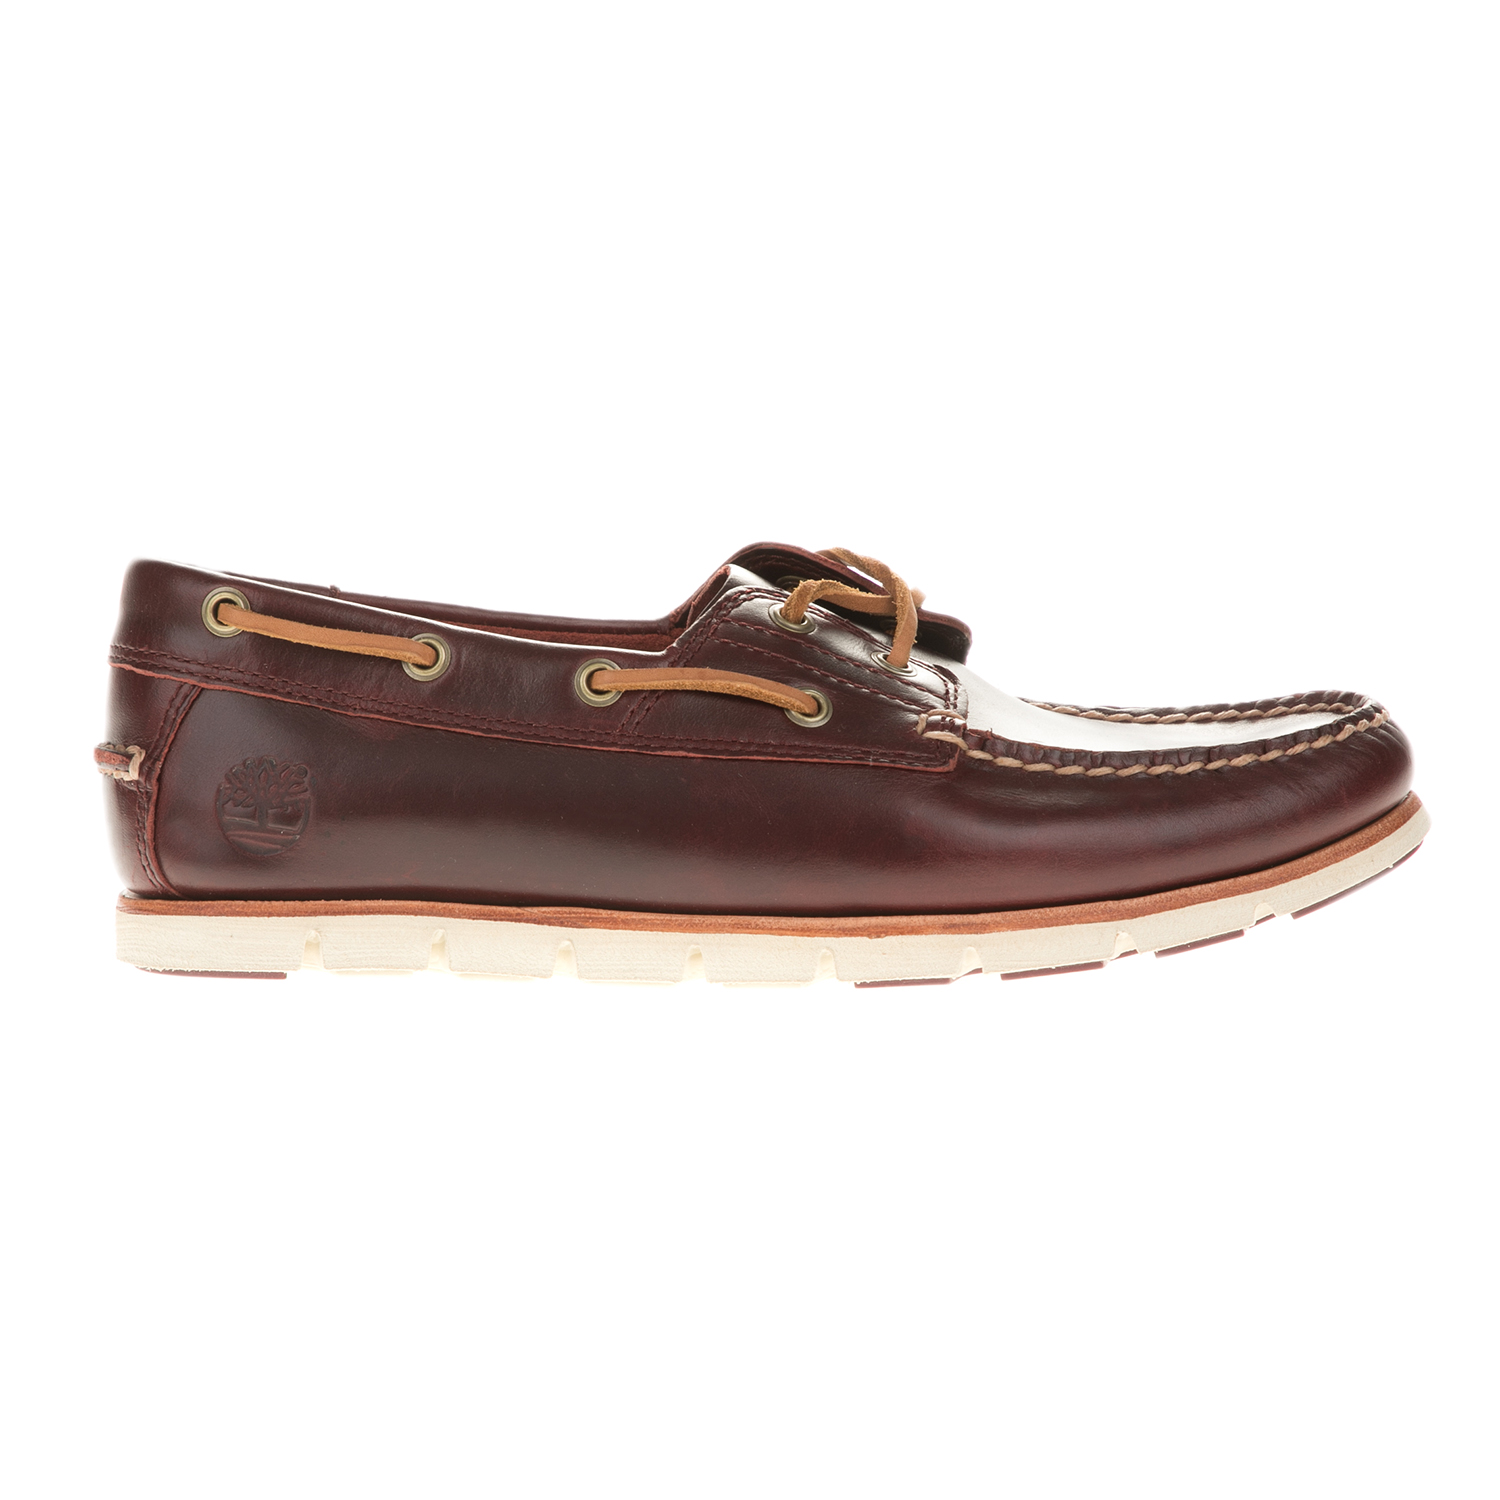 TIMBERLAND - Ανδρικά boat shoes TIMBERLAND A1BHM TIDELANDS καφέ ανδρικά παπούτσια boat shoes